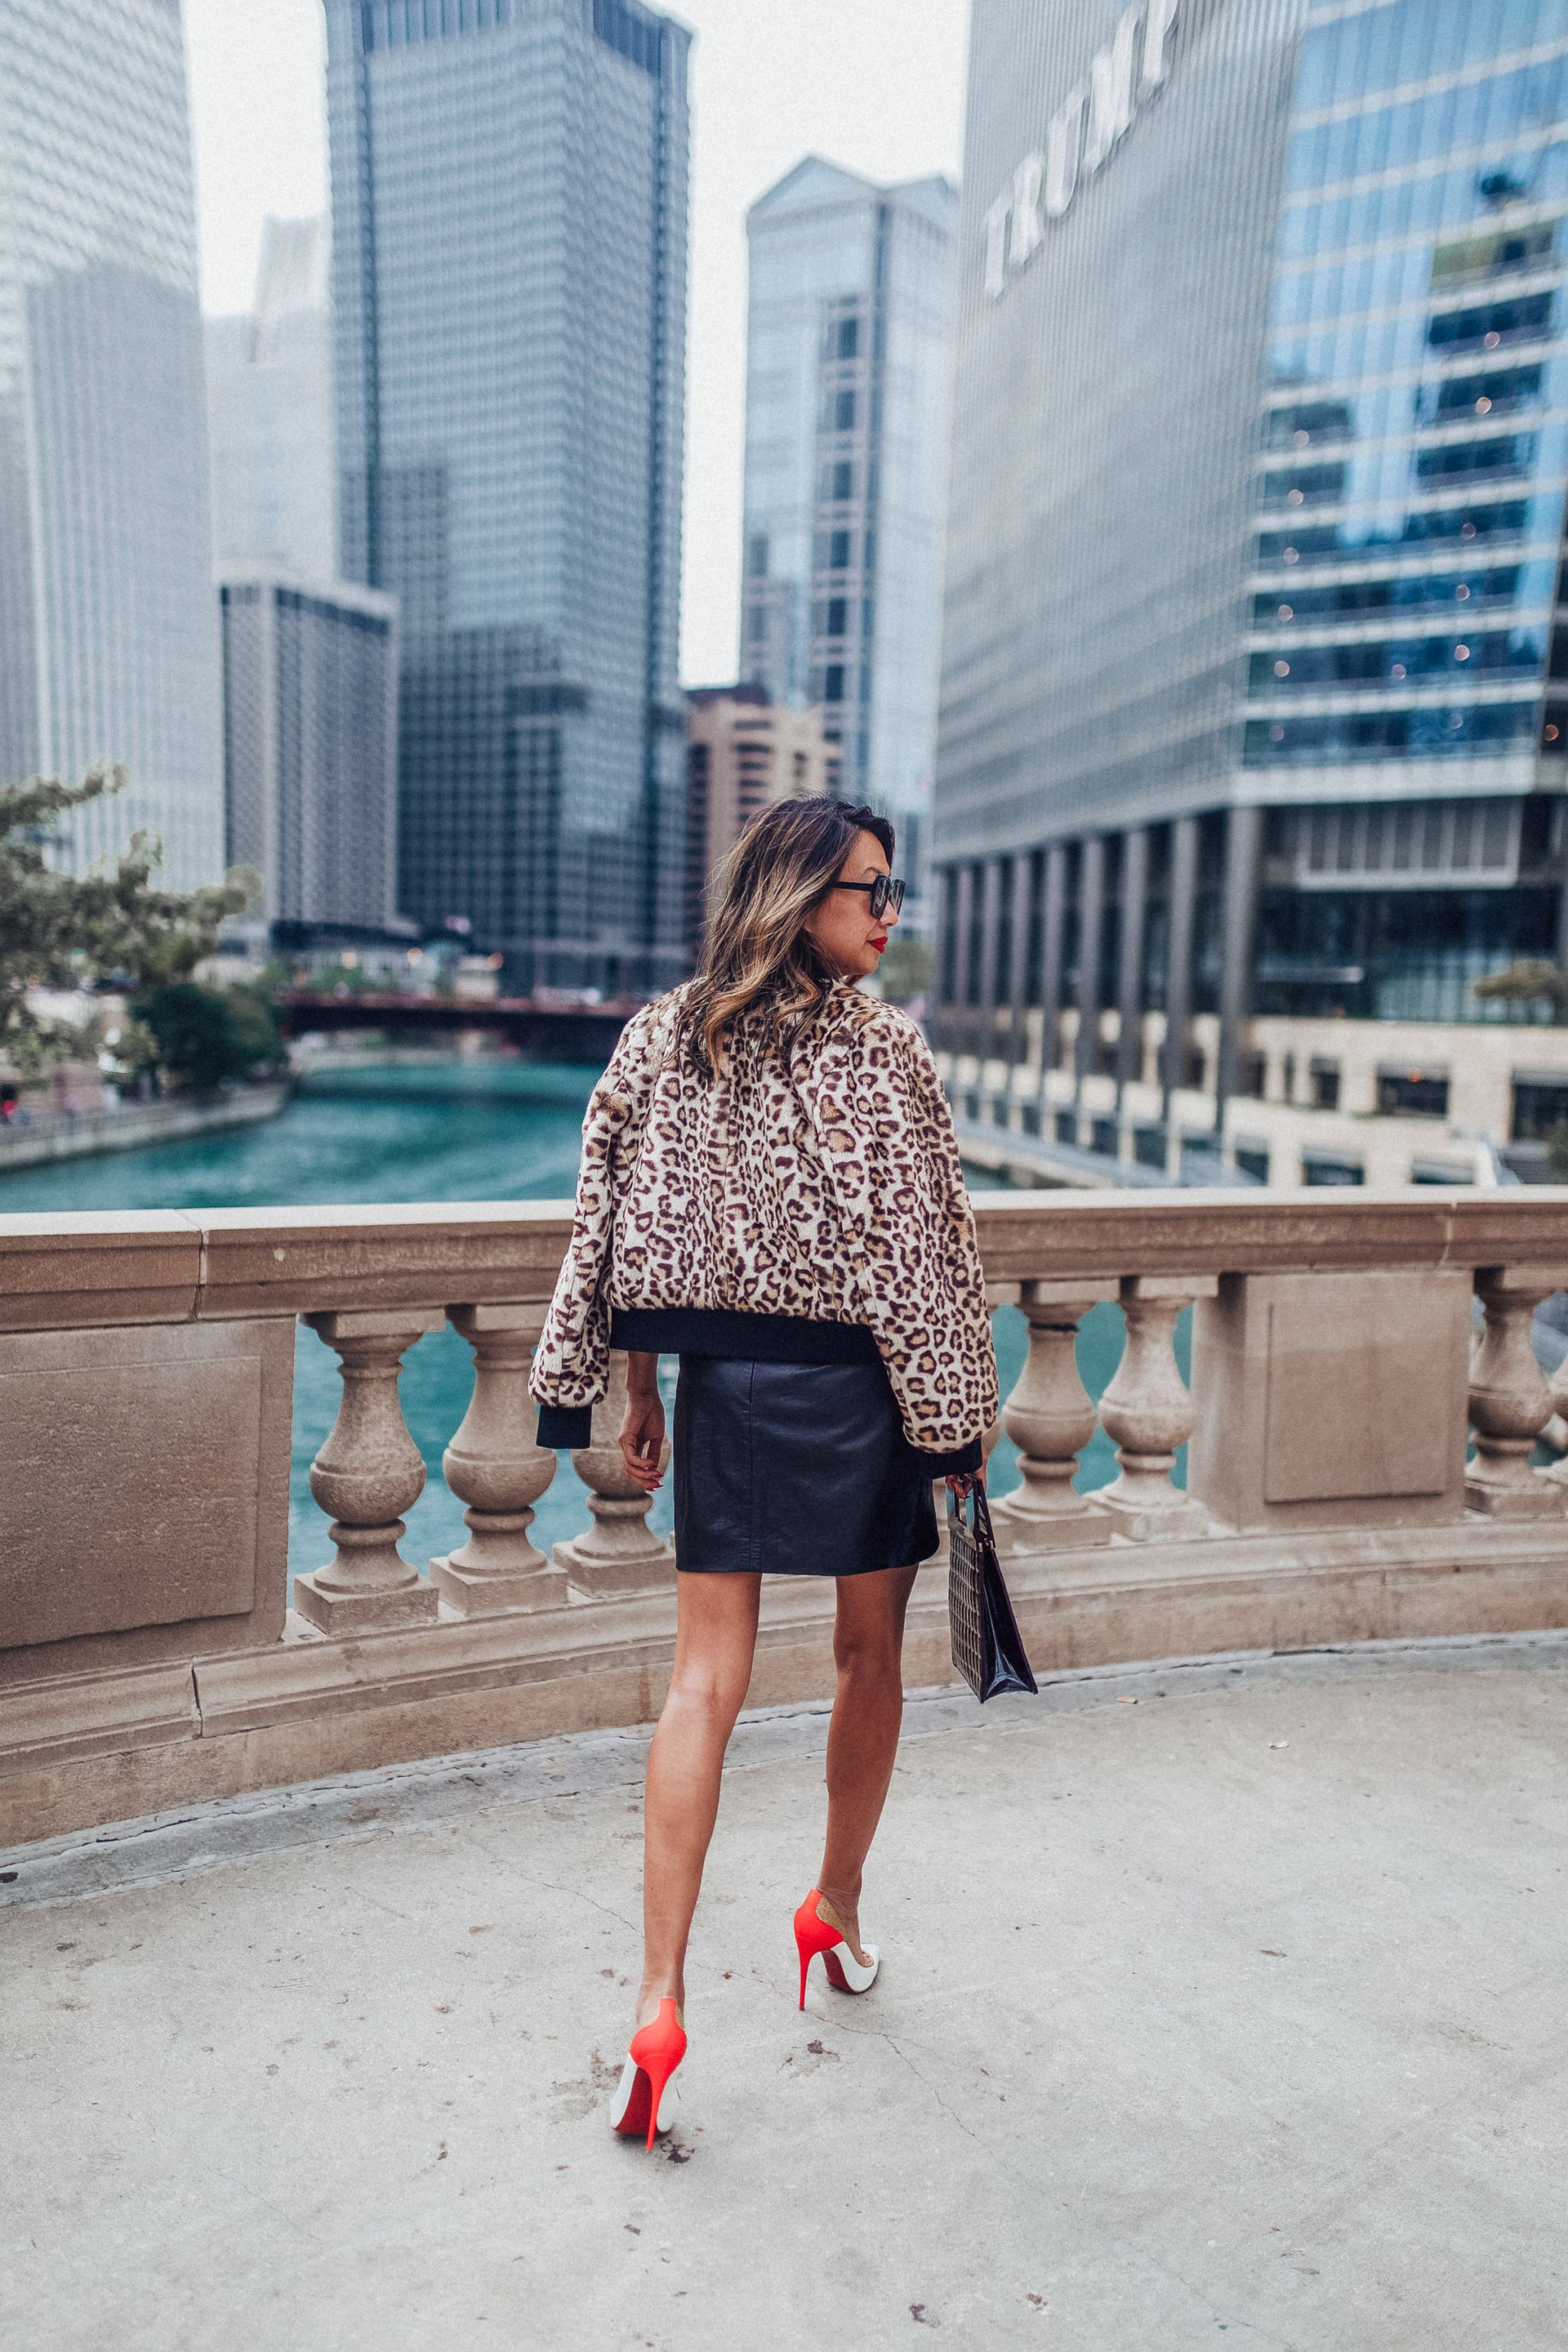 kate spade leopard jacket, best faux fur leopard jacket, fall style with leopard, how to style a leopard jacket, faux fur style, jennifer worman